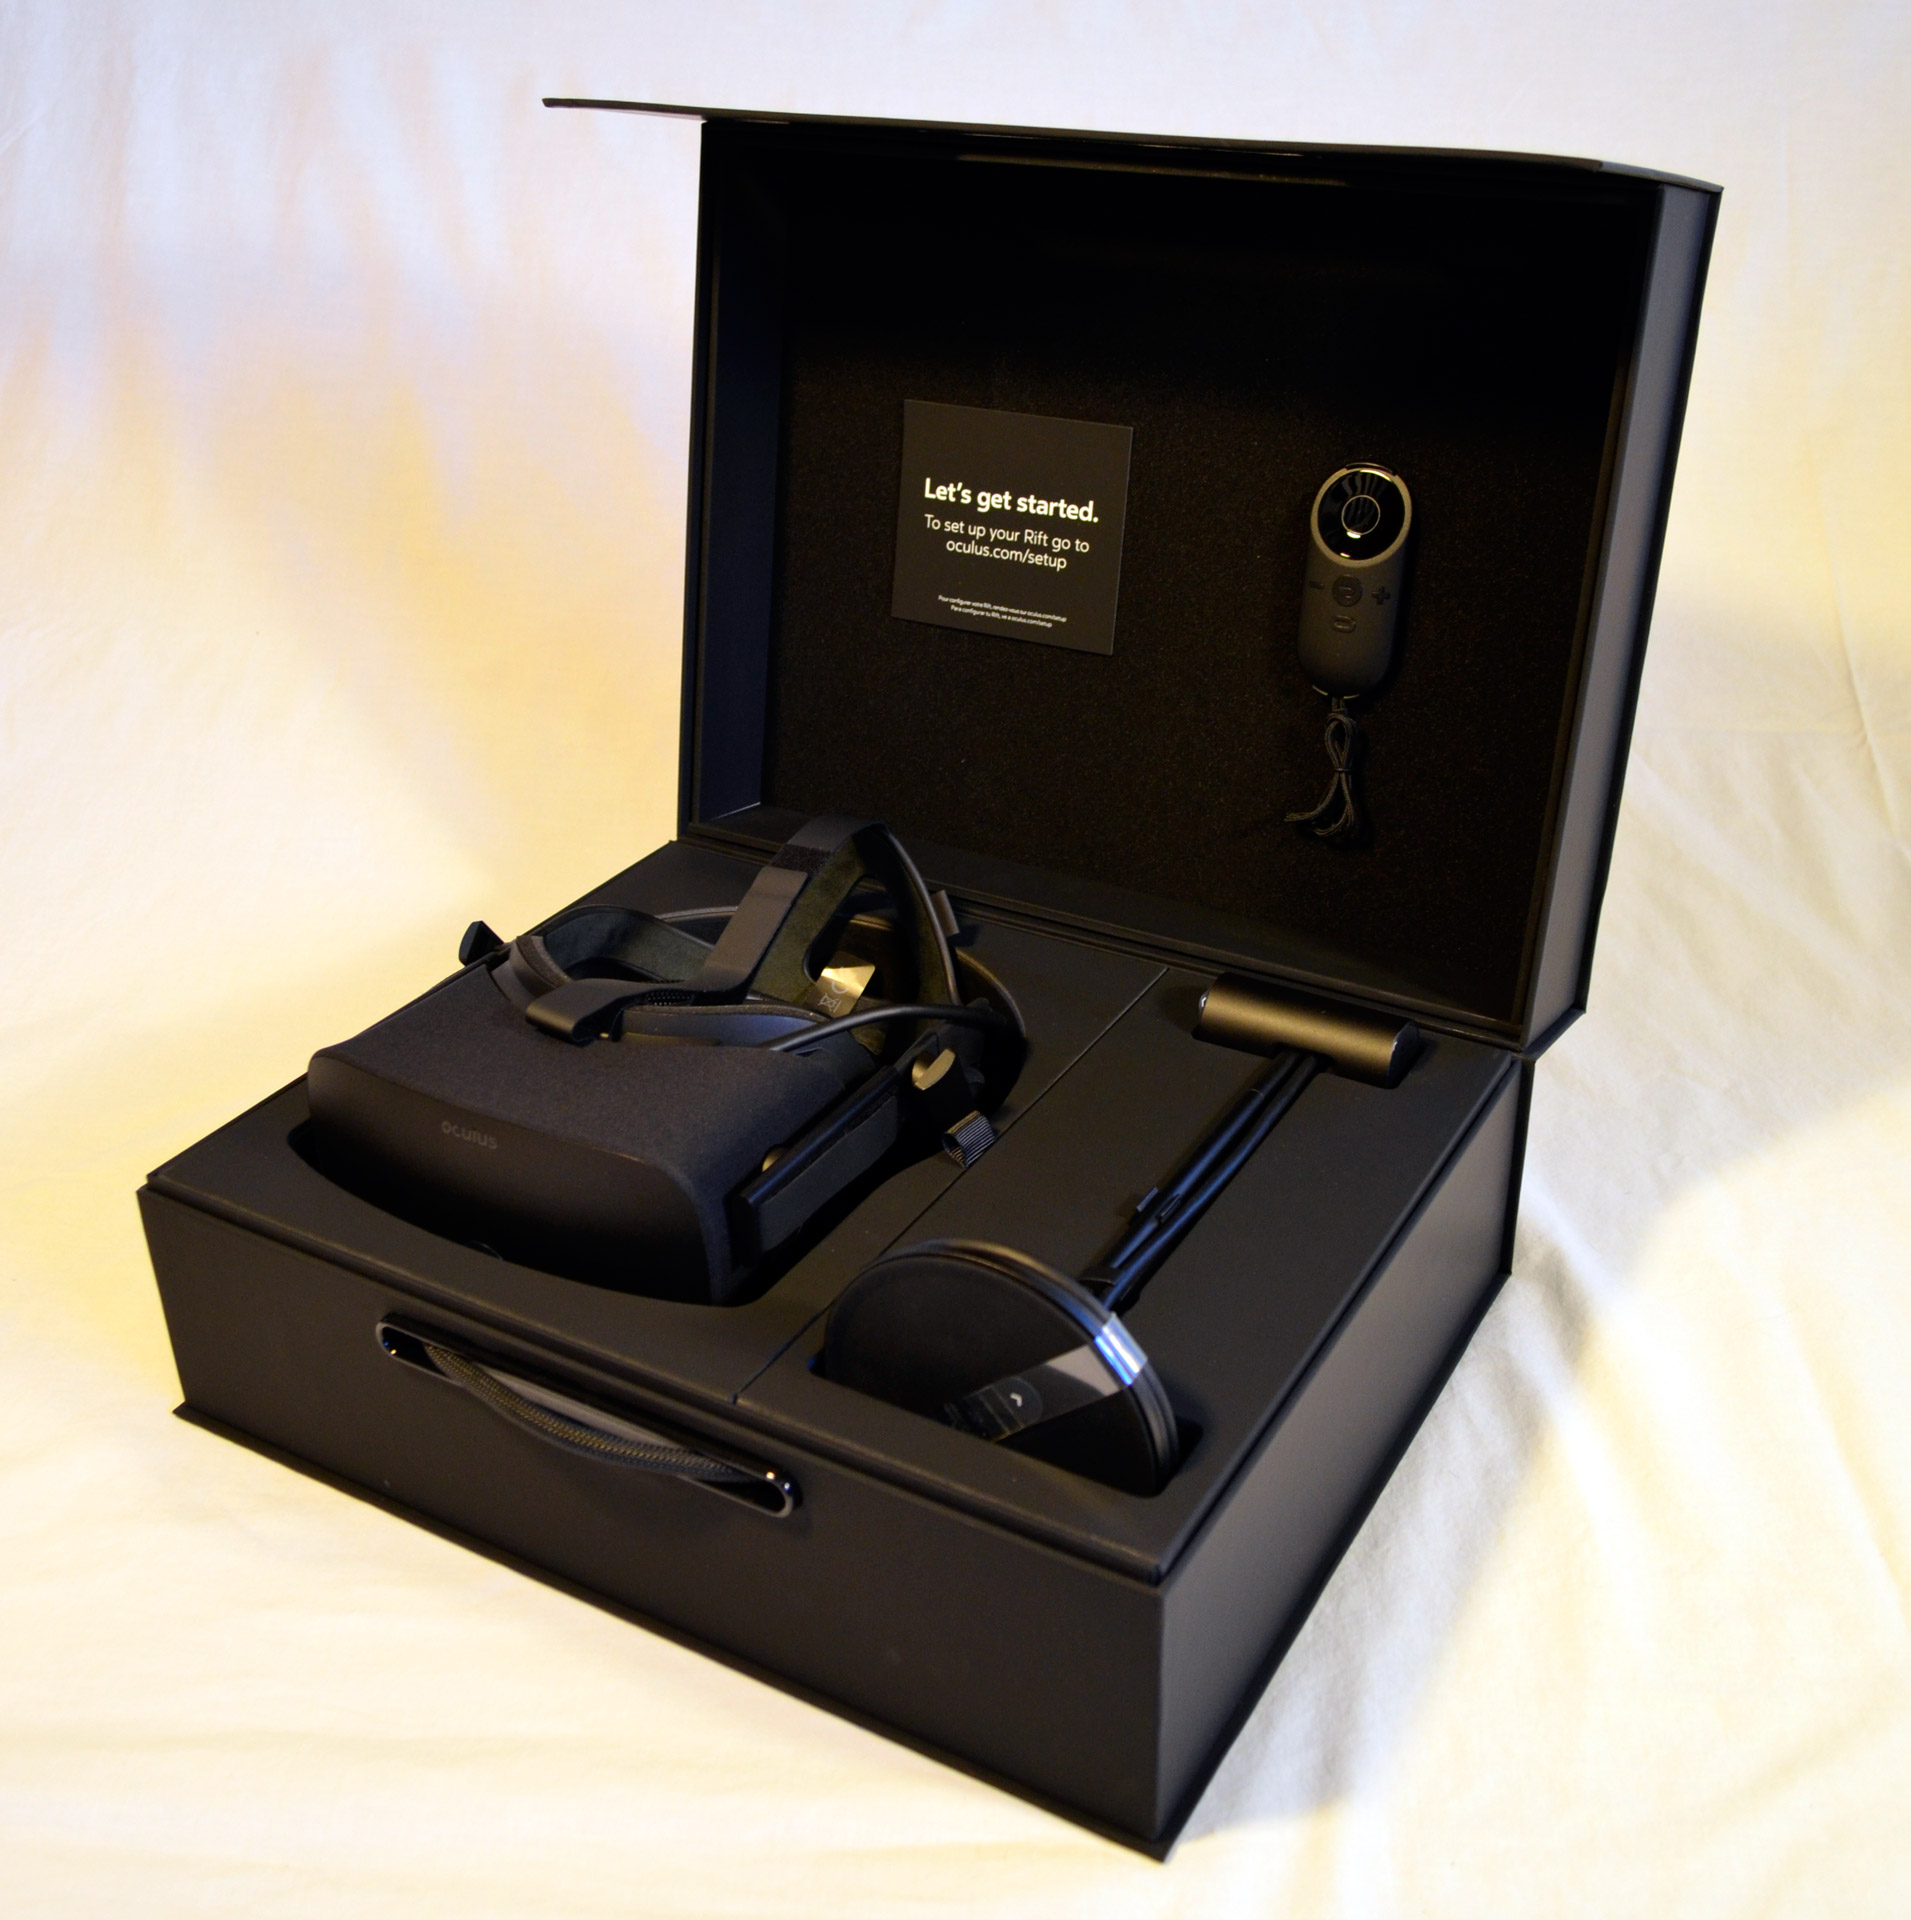 Step Into The Light Vr: Unboxing The New Oculus Rift Step-by-Step In Pictures